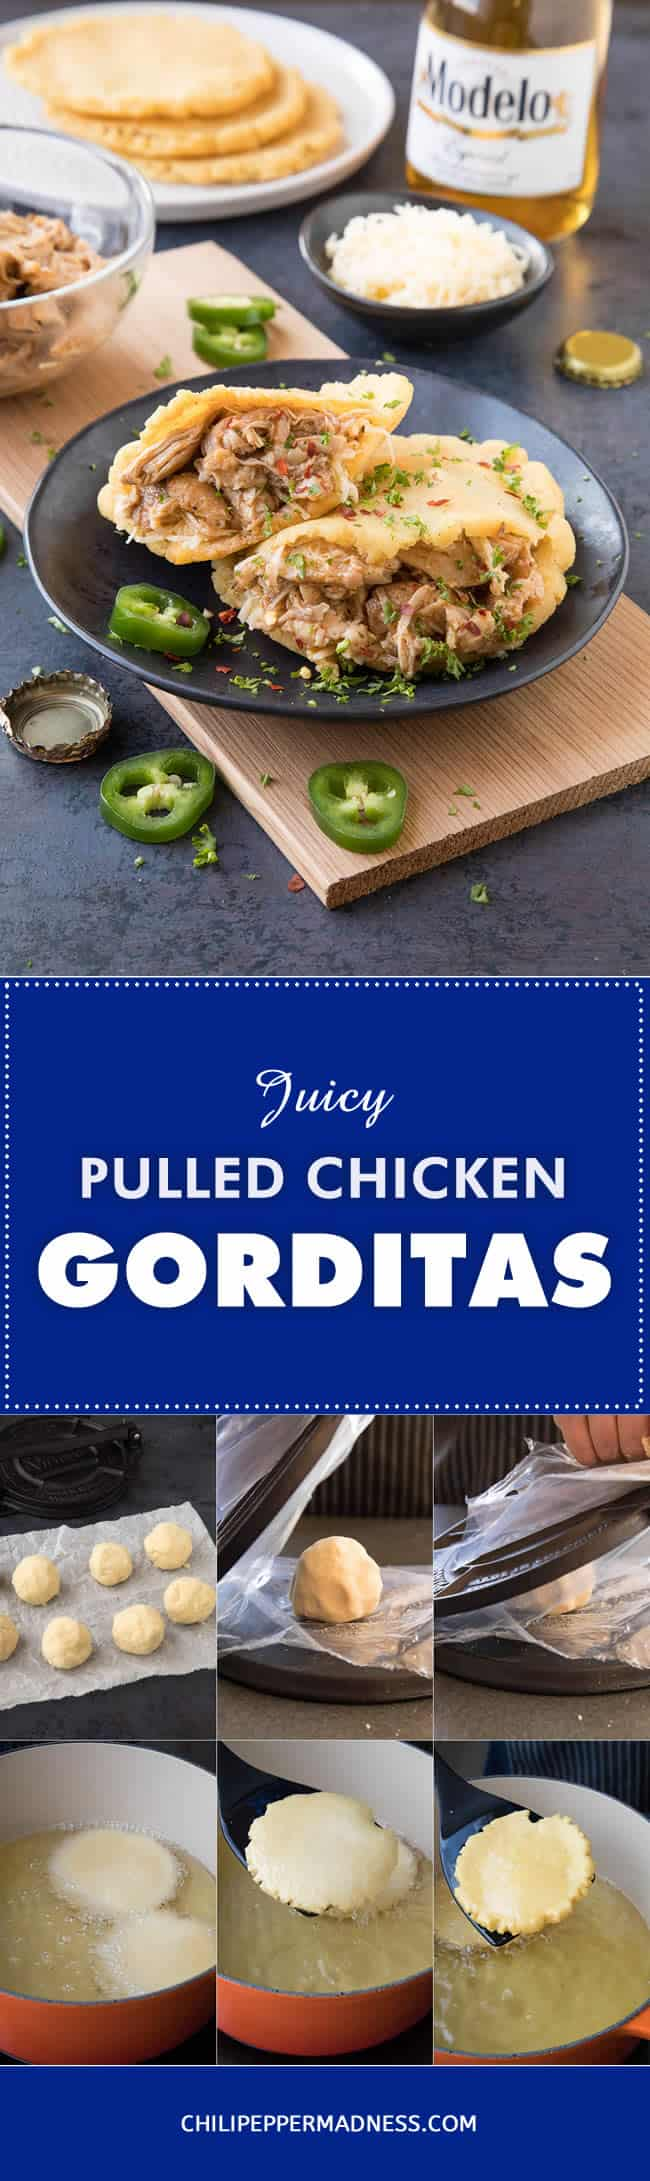 Pulled Chicken Gorditas - Recipe | ChiliPepperMadness.com #gorditas #pulledchicken #MexicanFood #CincodeMayo